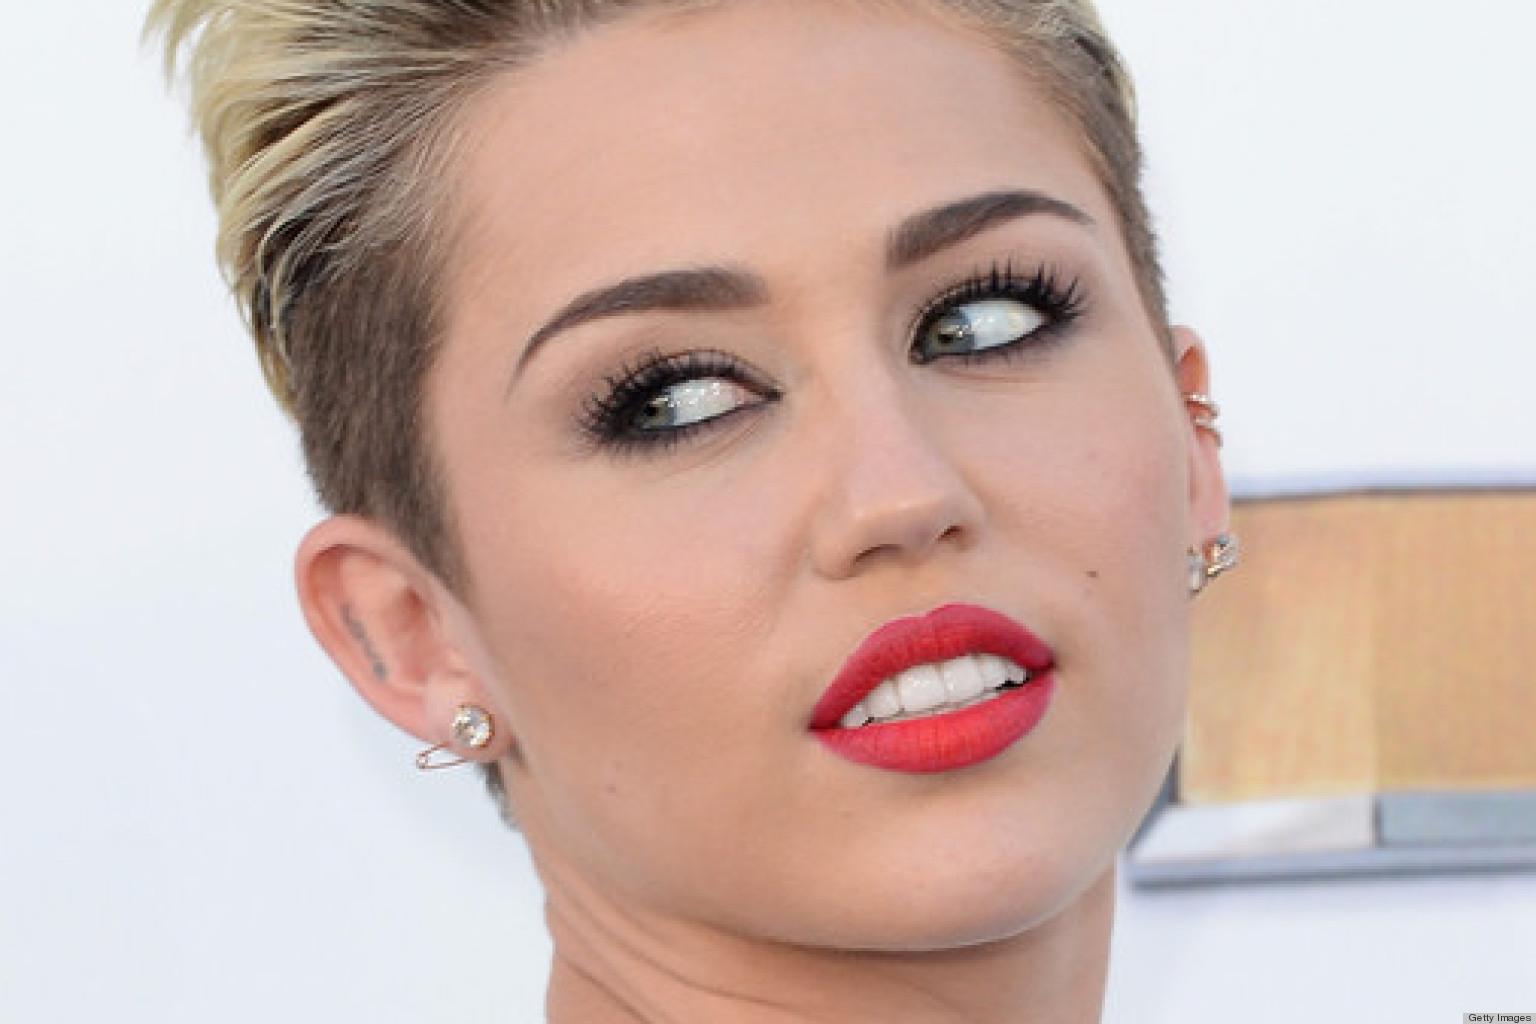 PHOTOS: Miley Cyrus Decides To Wear Pants To The 2013 Billboard Music Awards